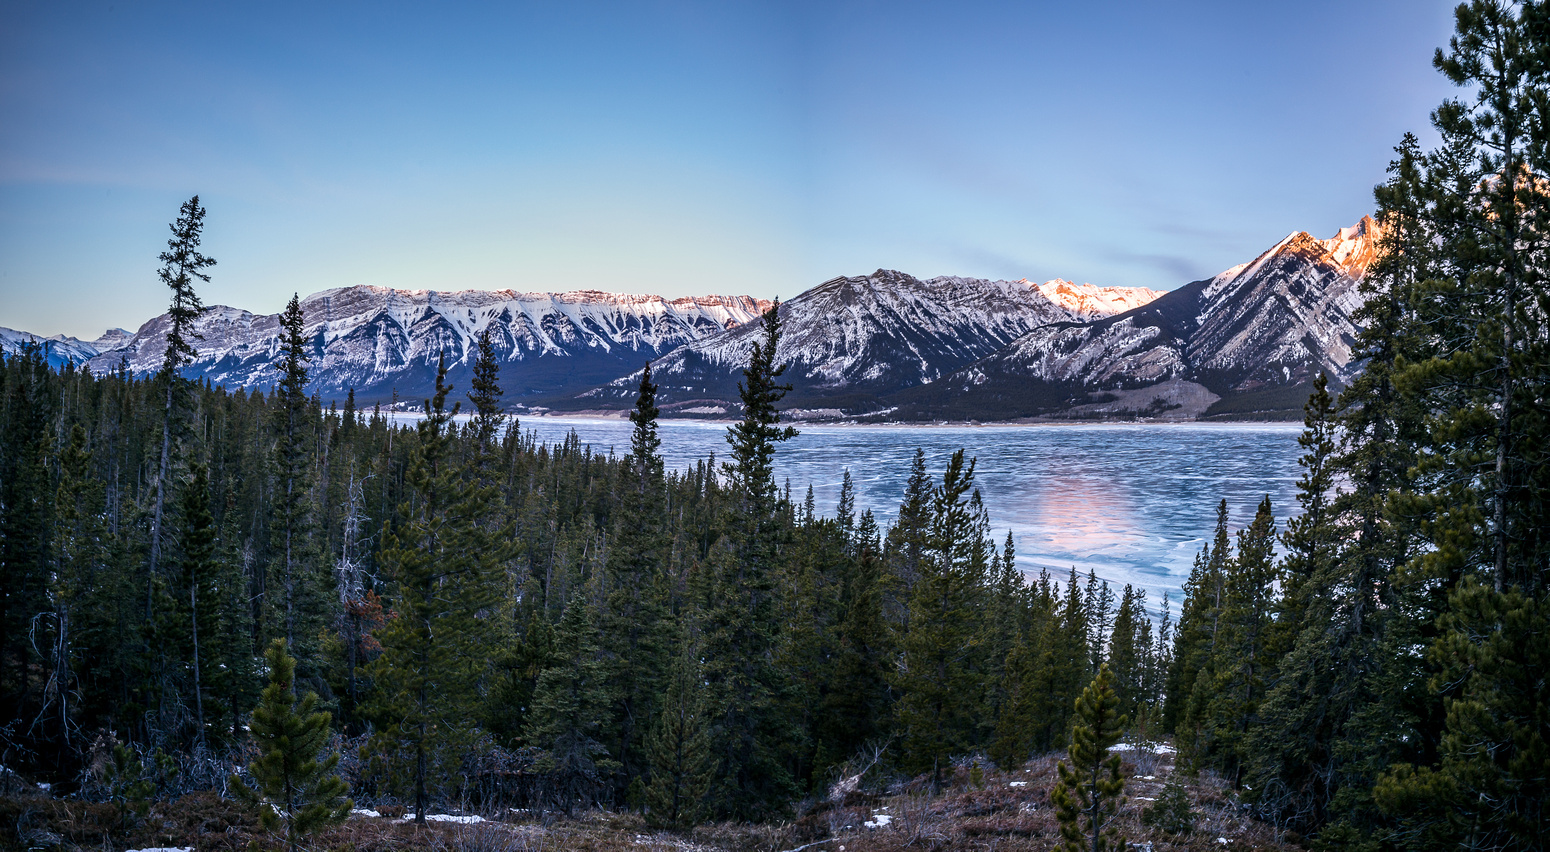 Gaining the lower NW ridge of Michener, looking back at Abraham Lake towards Vision Quest and Coral Ridge.